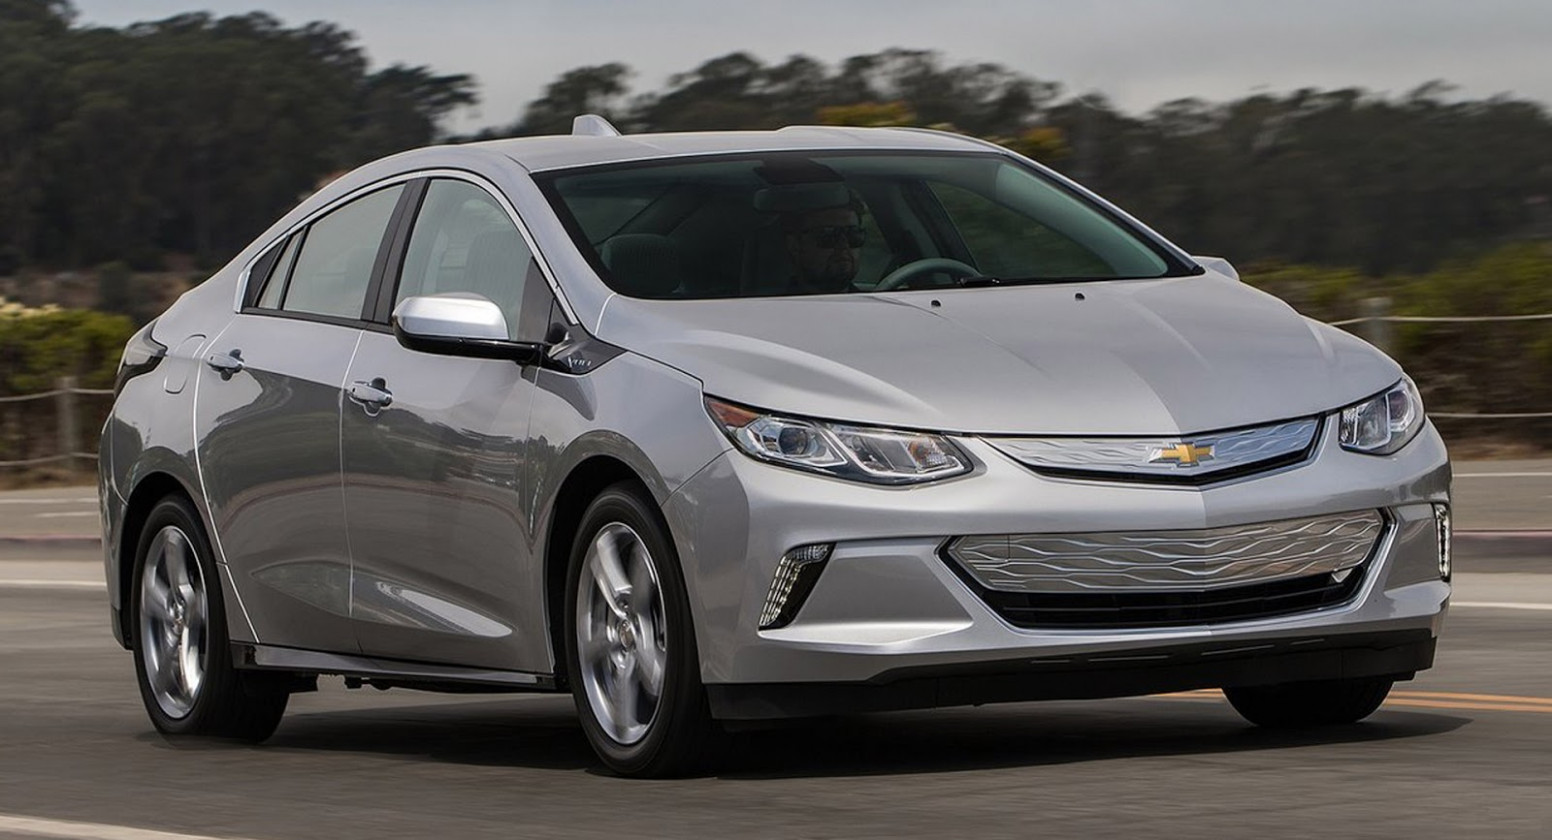 Prices 2022 Chevrolet Volt